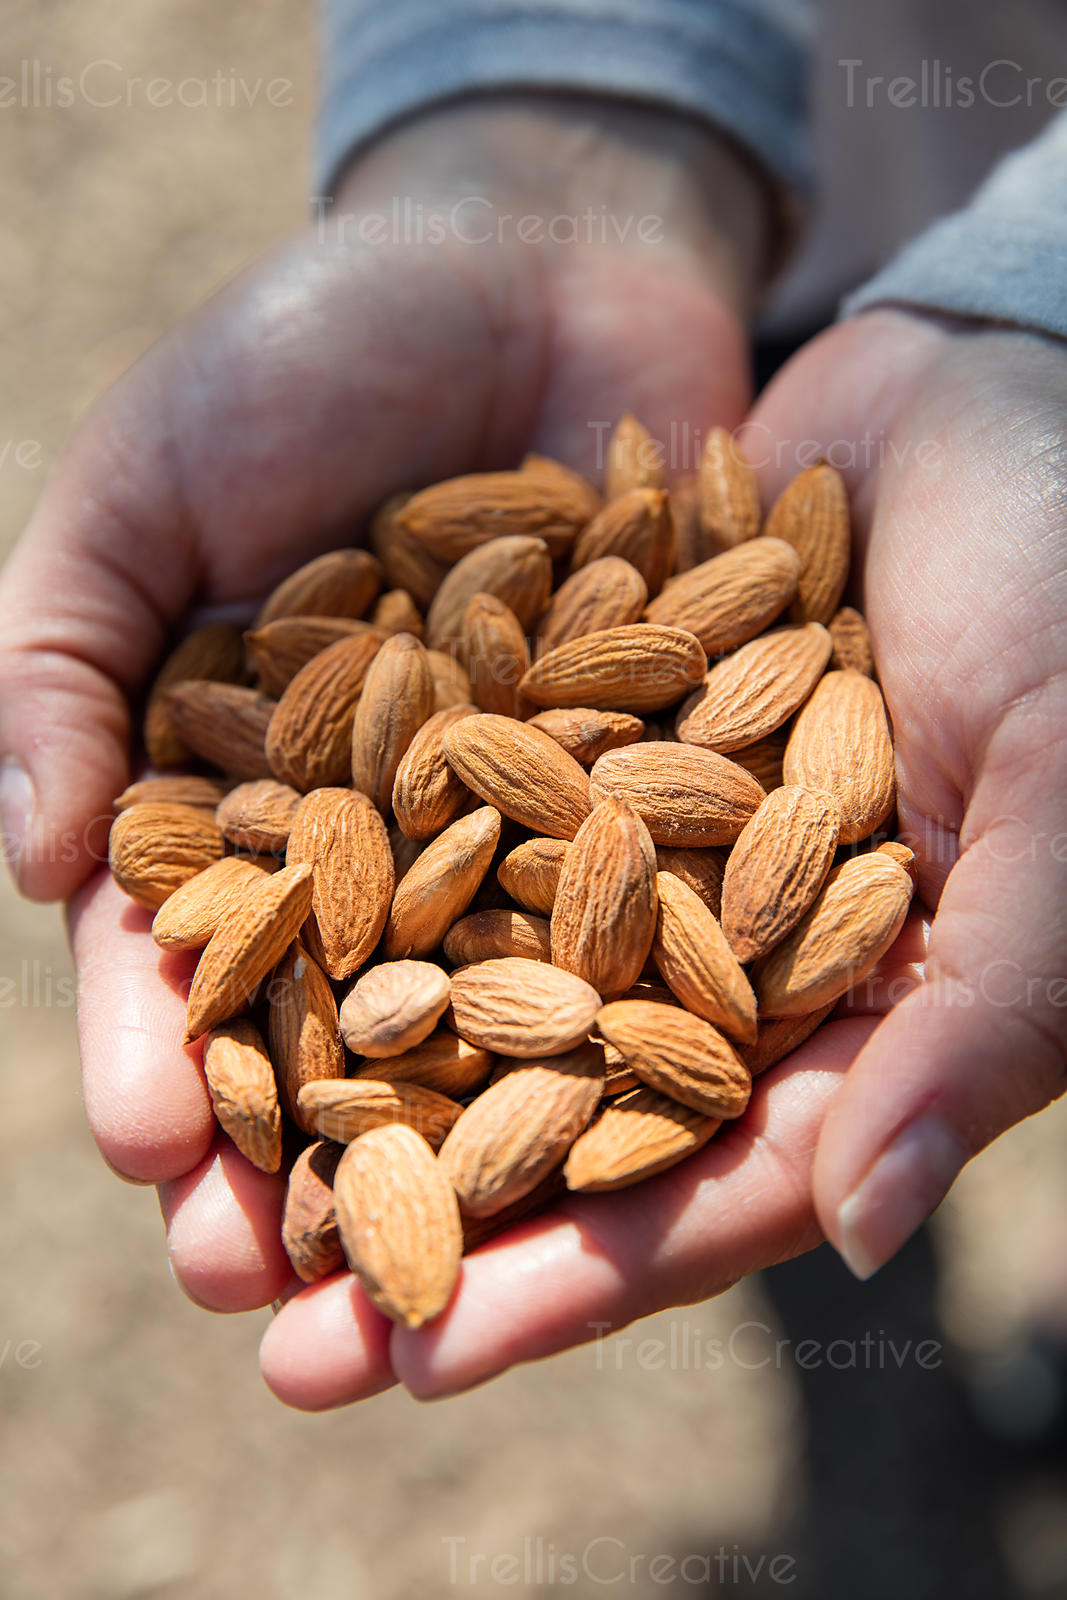 Close-up of a person's hand holding almonds